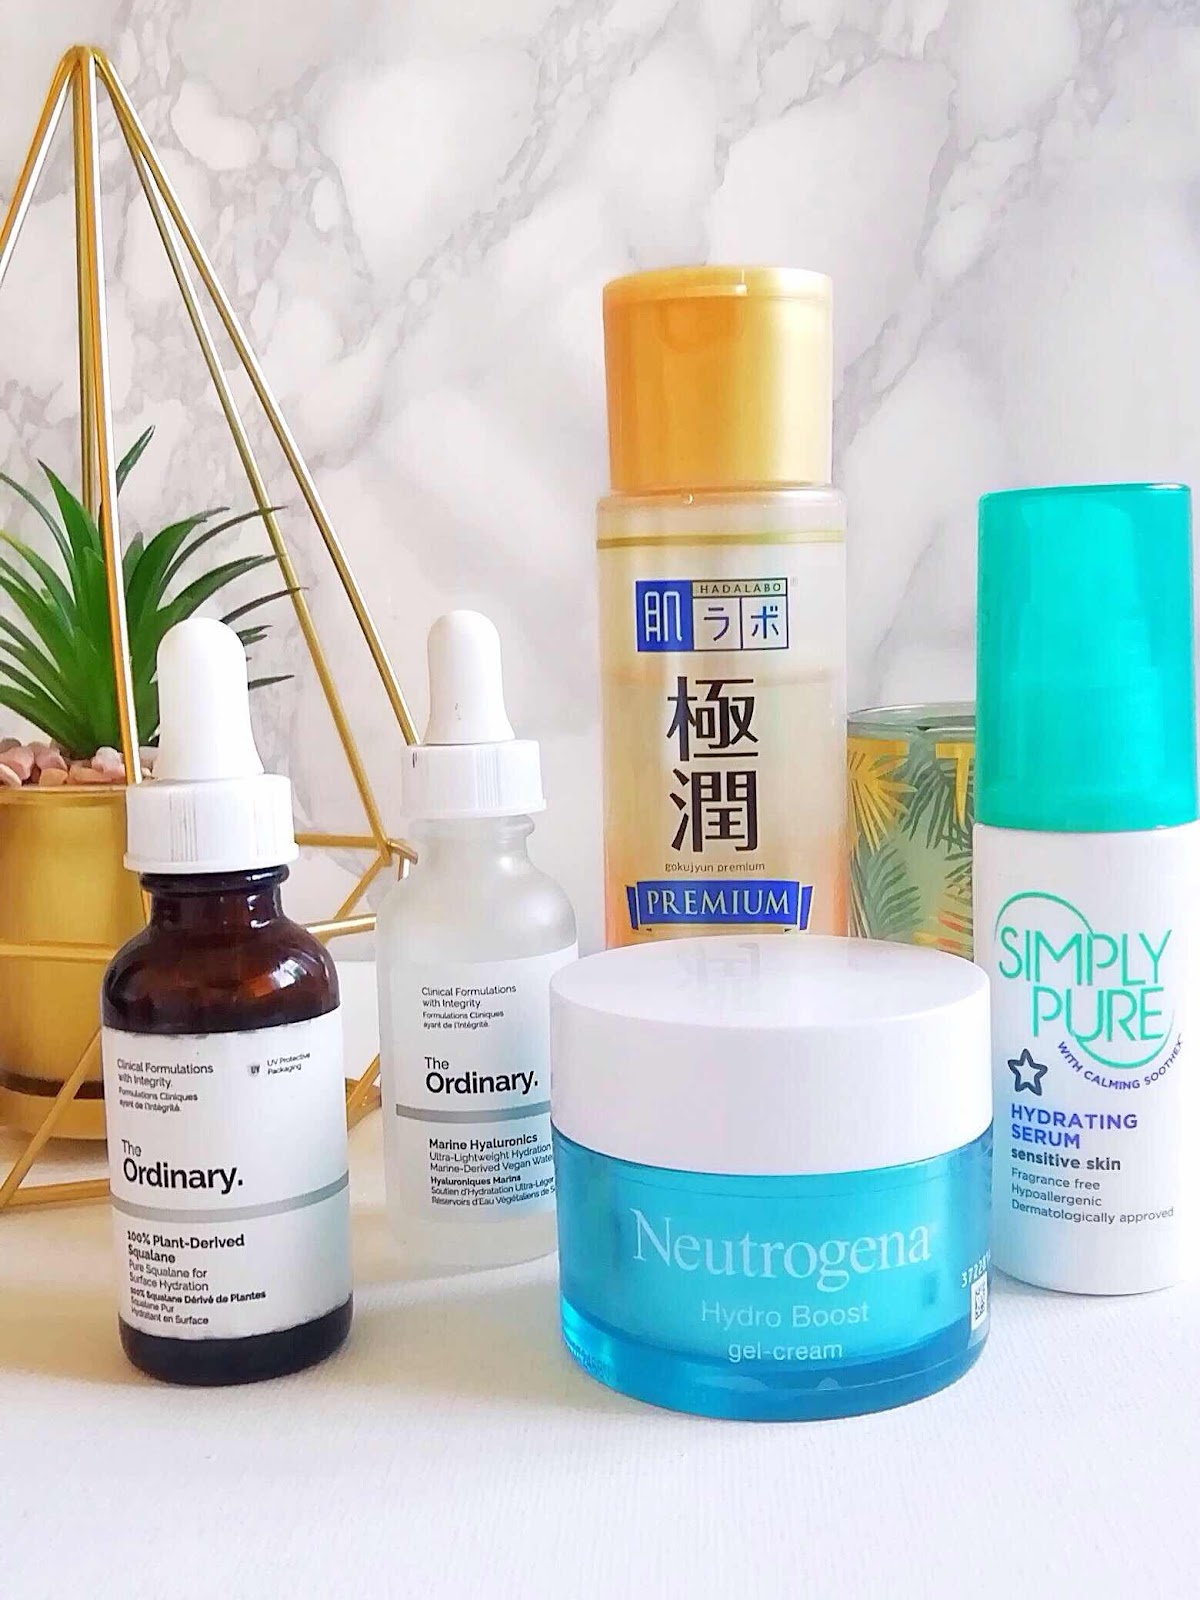 skincare products featuring the ordinary marine hyaluronics, squalane, hada labo premium lotion, neutrogena hydra boost, simply pure serum